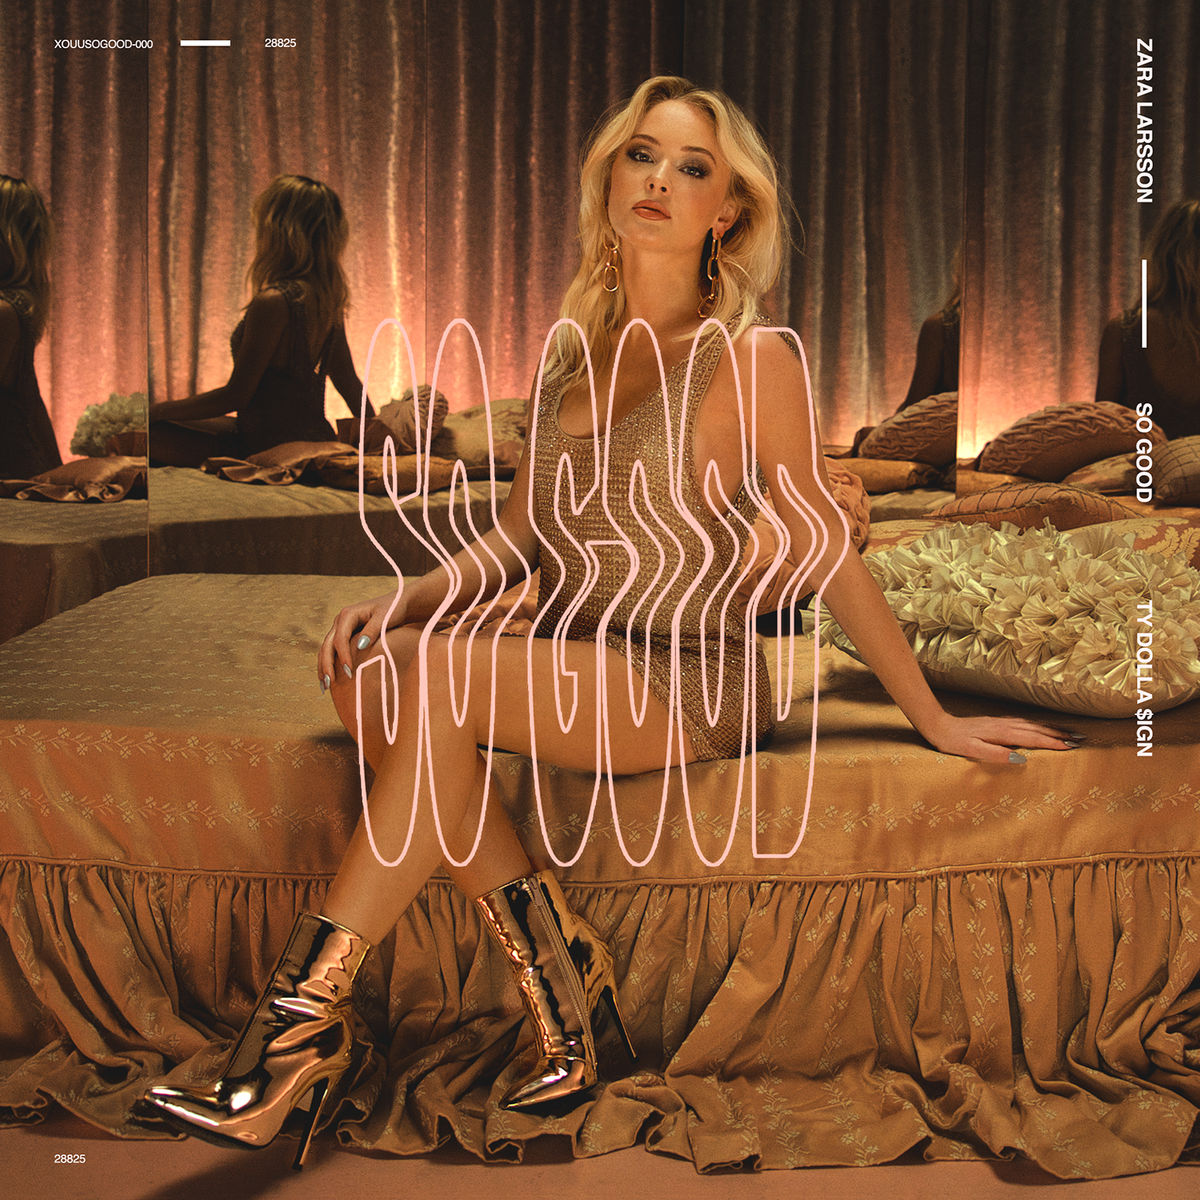 5a50917cf8 ultratop.be - Zara Larsson feat. Ty Dolla $ign - So Good